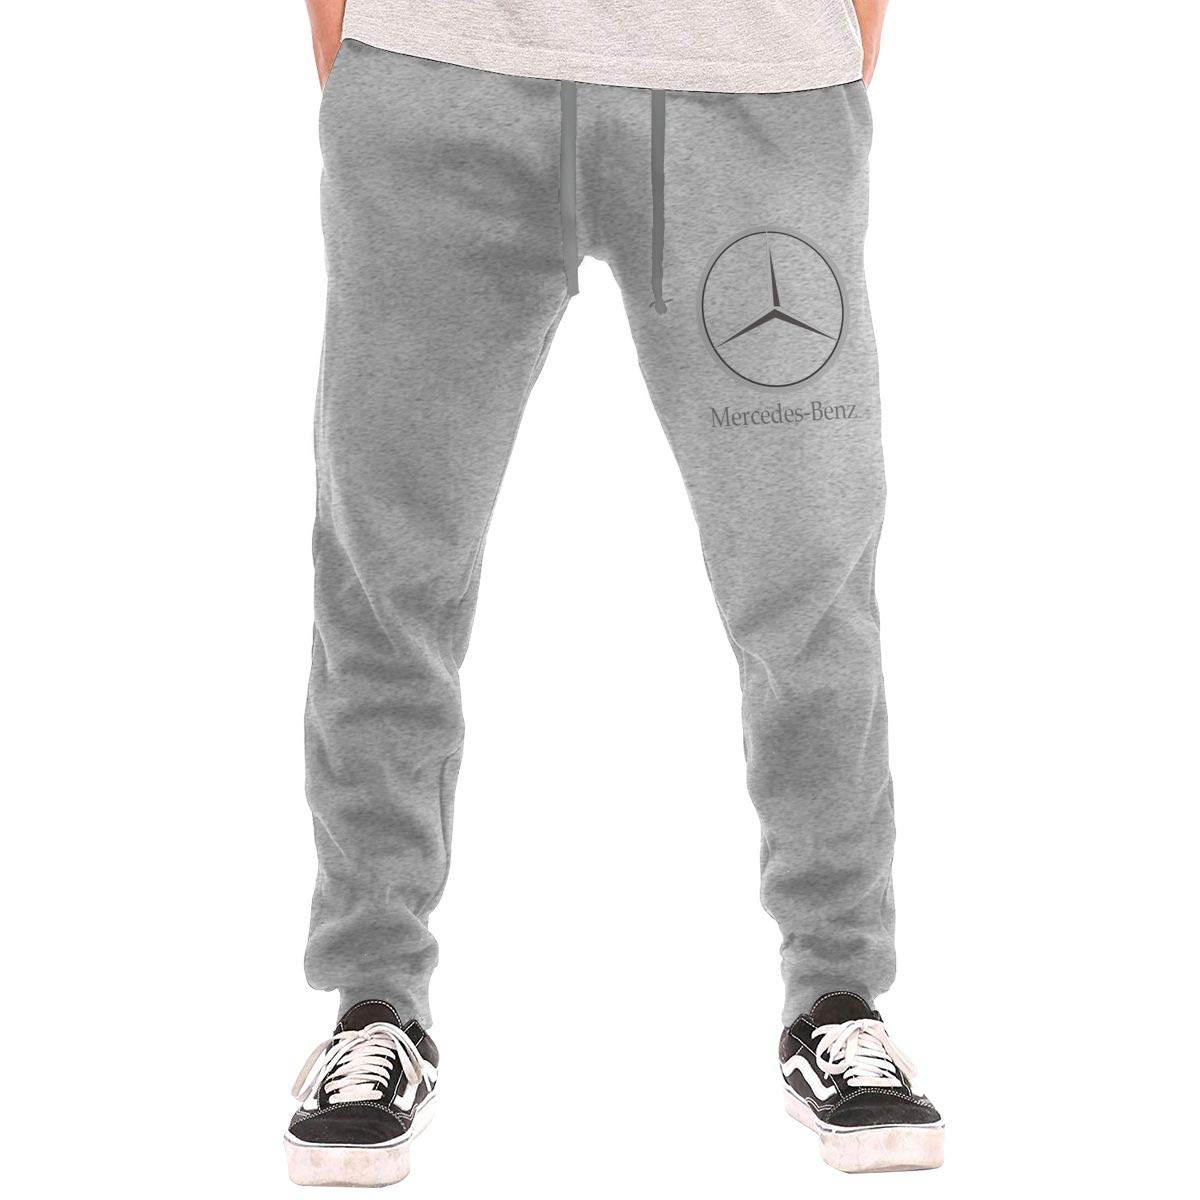 Kinggo Man Personalized Mercedes Benz Logo New with Pockets Casual Pant Black